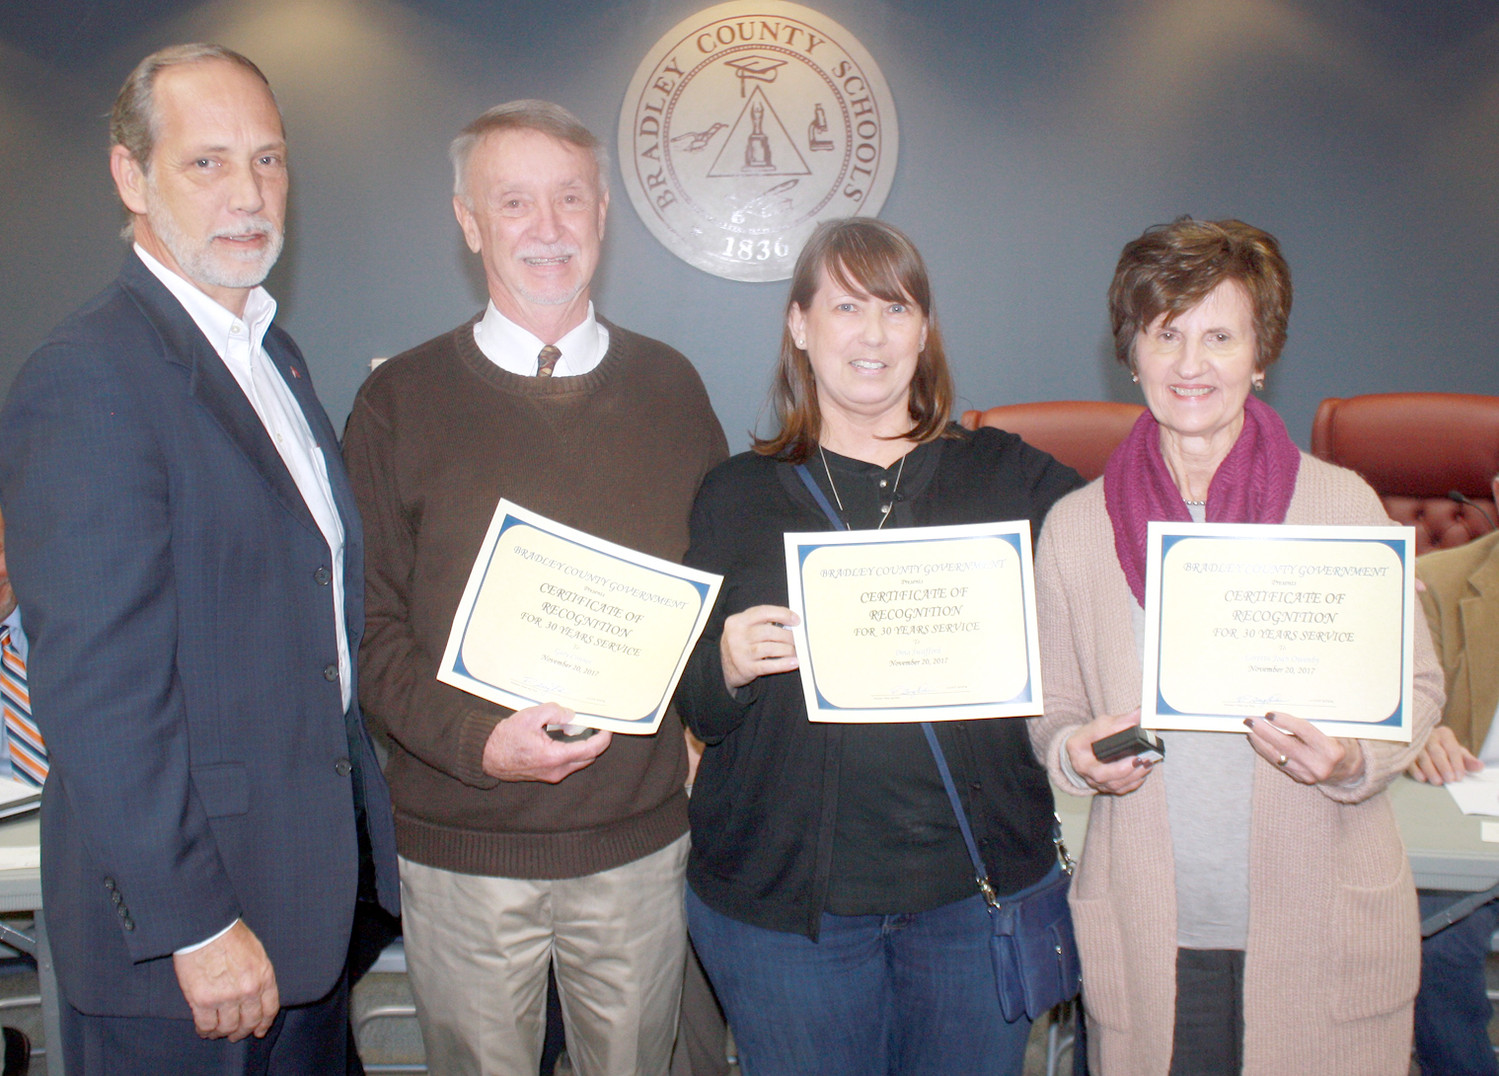 BRADLEY COUNTY MAYOR D. Gary Davis, left, recognized three county employees with recognition for 30 years of service, during Monday's Commission meeting. The three employees included Gary Conners, Dina Swafford and Joan Owenby.